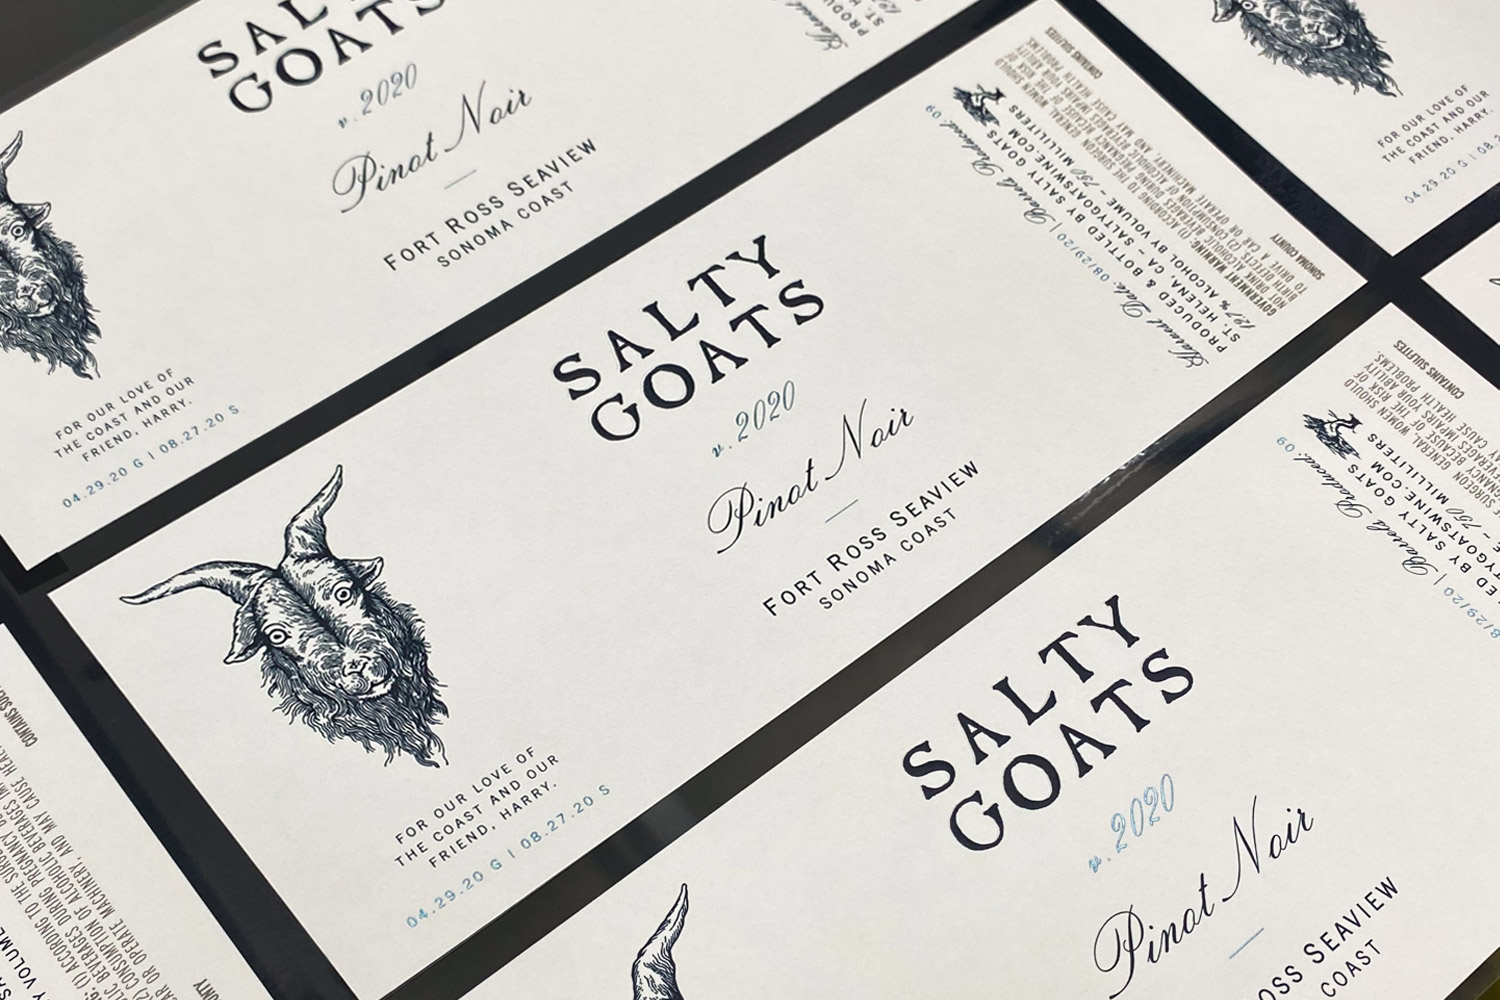 Salty Goats packaging